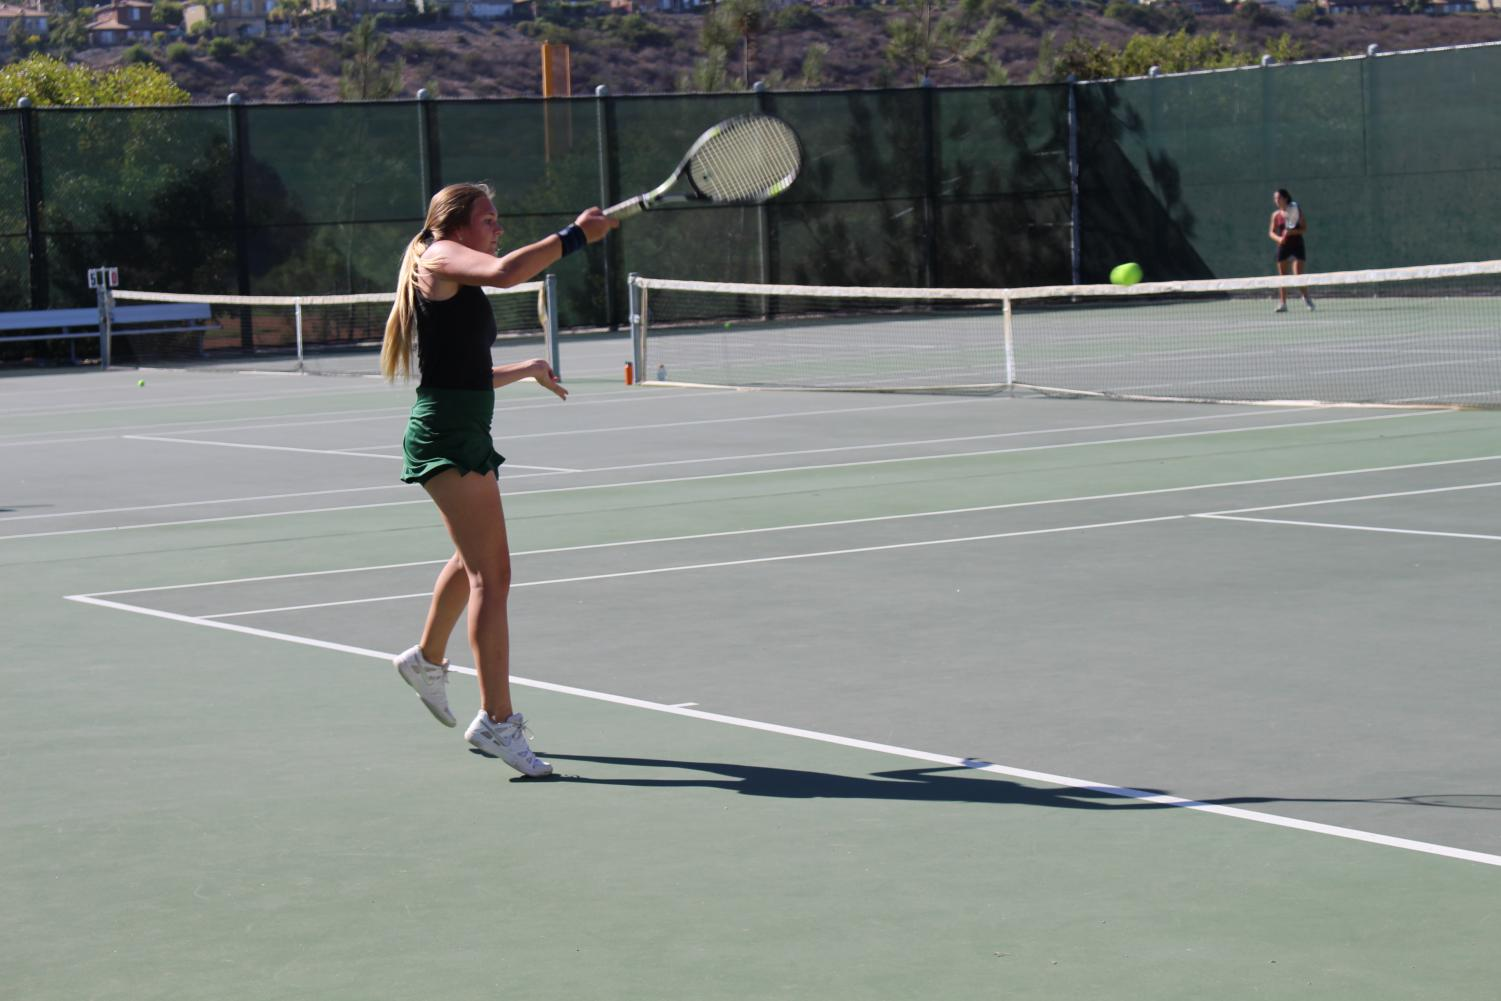 Senior Lindsey Williams takes a quick swing with her racket during the match against RBV.